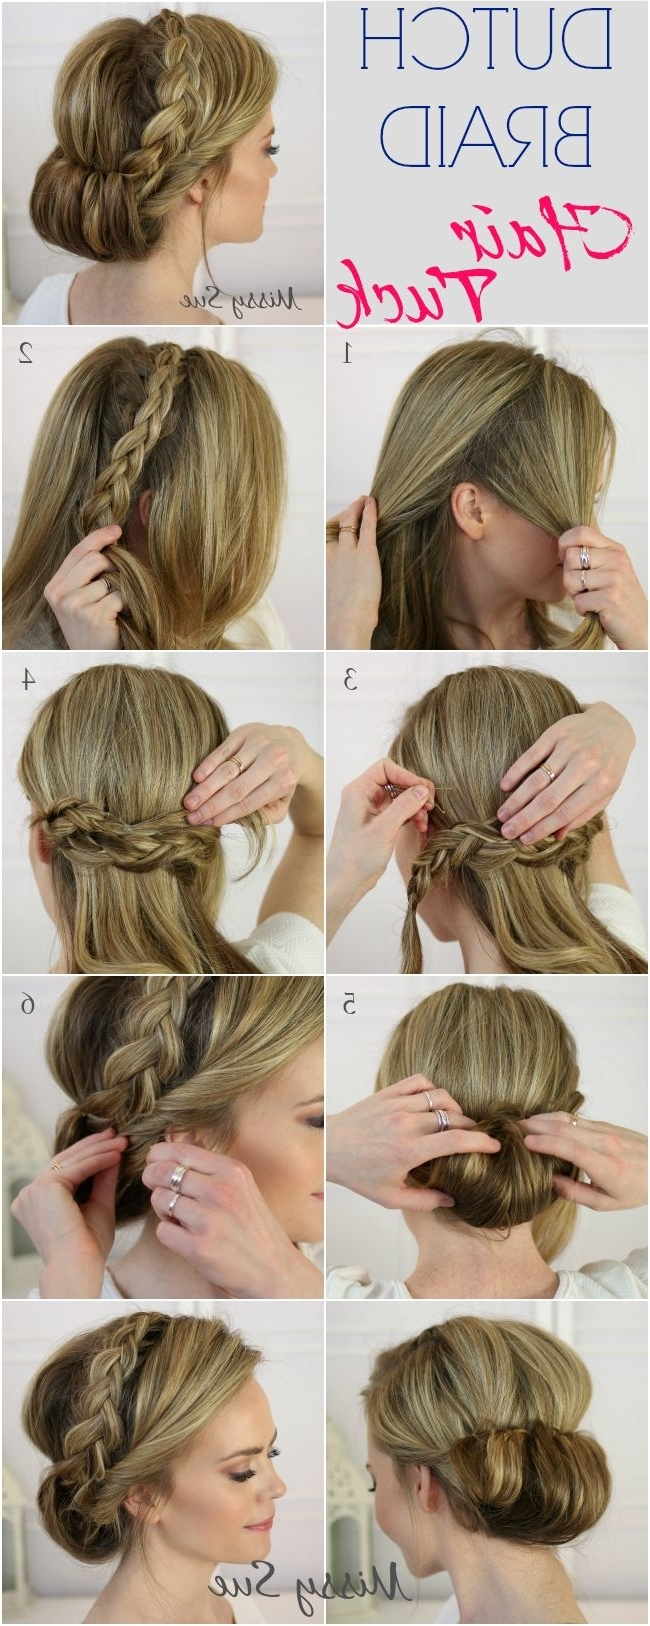 Most Up To Date Braided Headband And Twisted Side Pony Hairstyles Regarding 17 Stunning Dutch Braid Hairstyles With Tutorials – Pretty Designs (View 14 of 20)